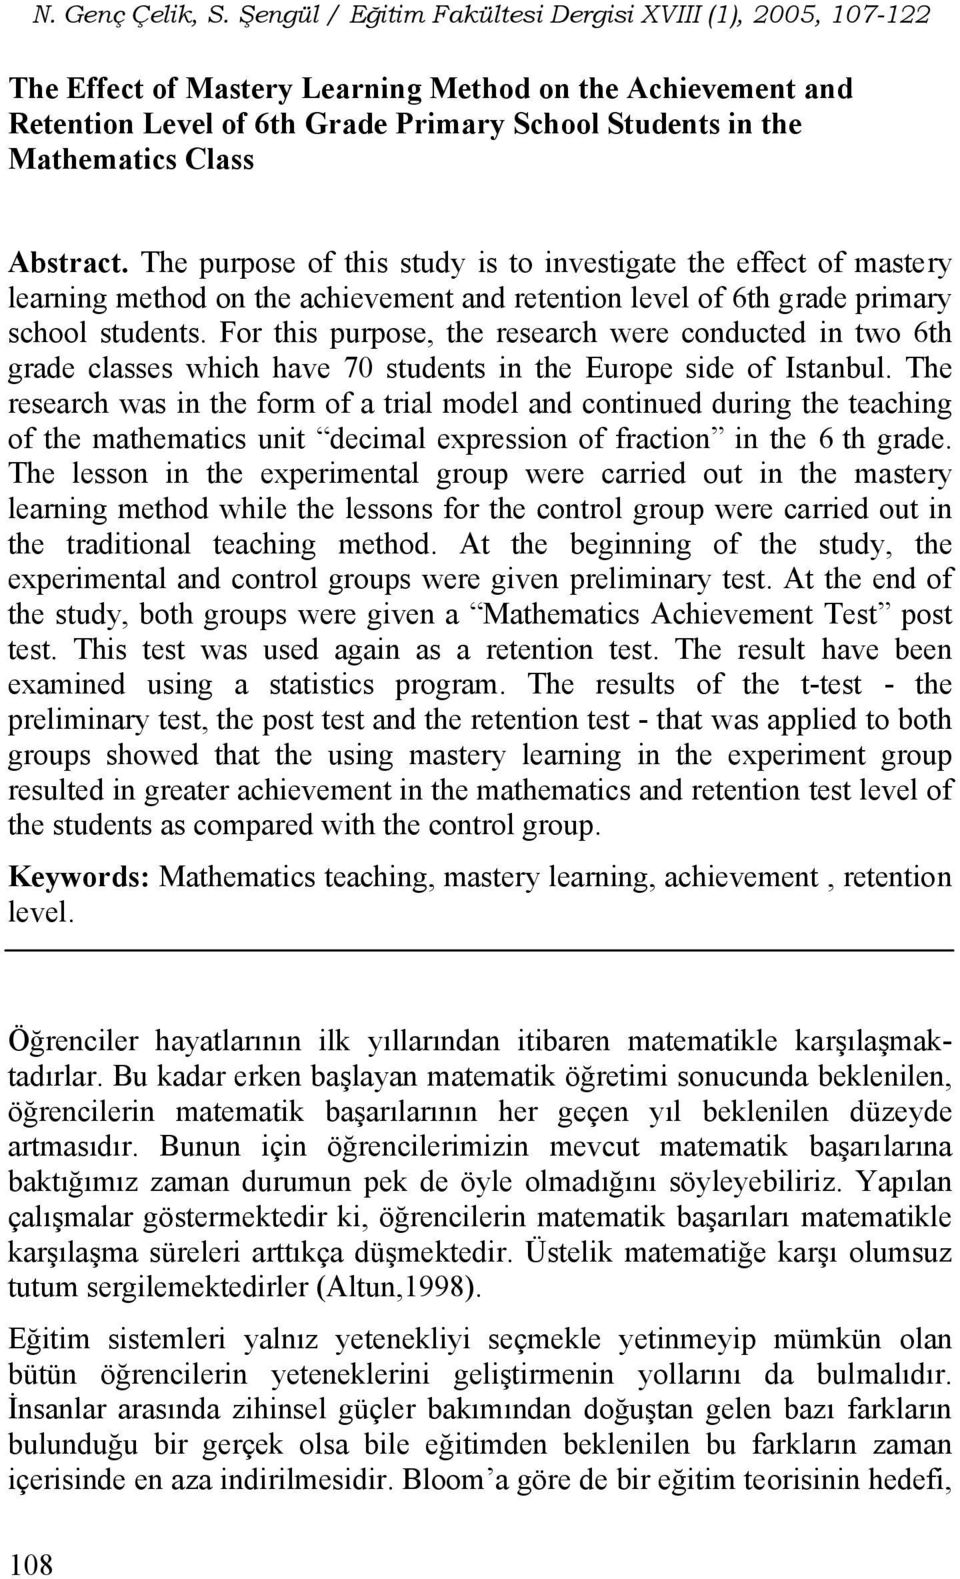 For this purpose, the research were conducted in two 6th grade classes which have 70 students in the Europe side of Istanbul.